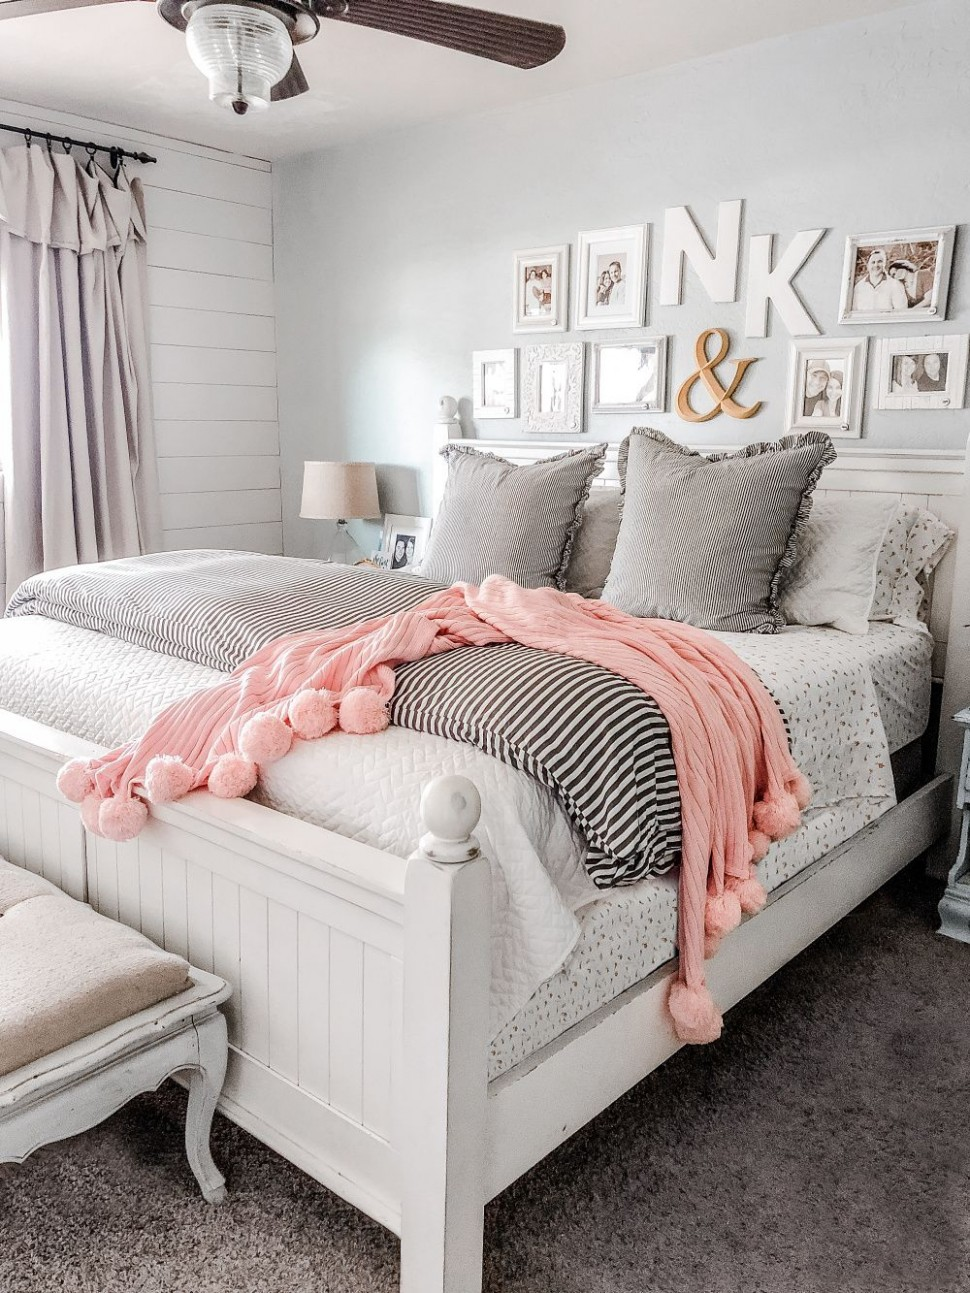 How to Layer a Coverlet Like a Boss - Lolly Jane  Bedroom  - Master Bedroom Quilt Ideas